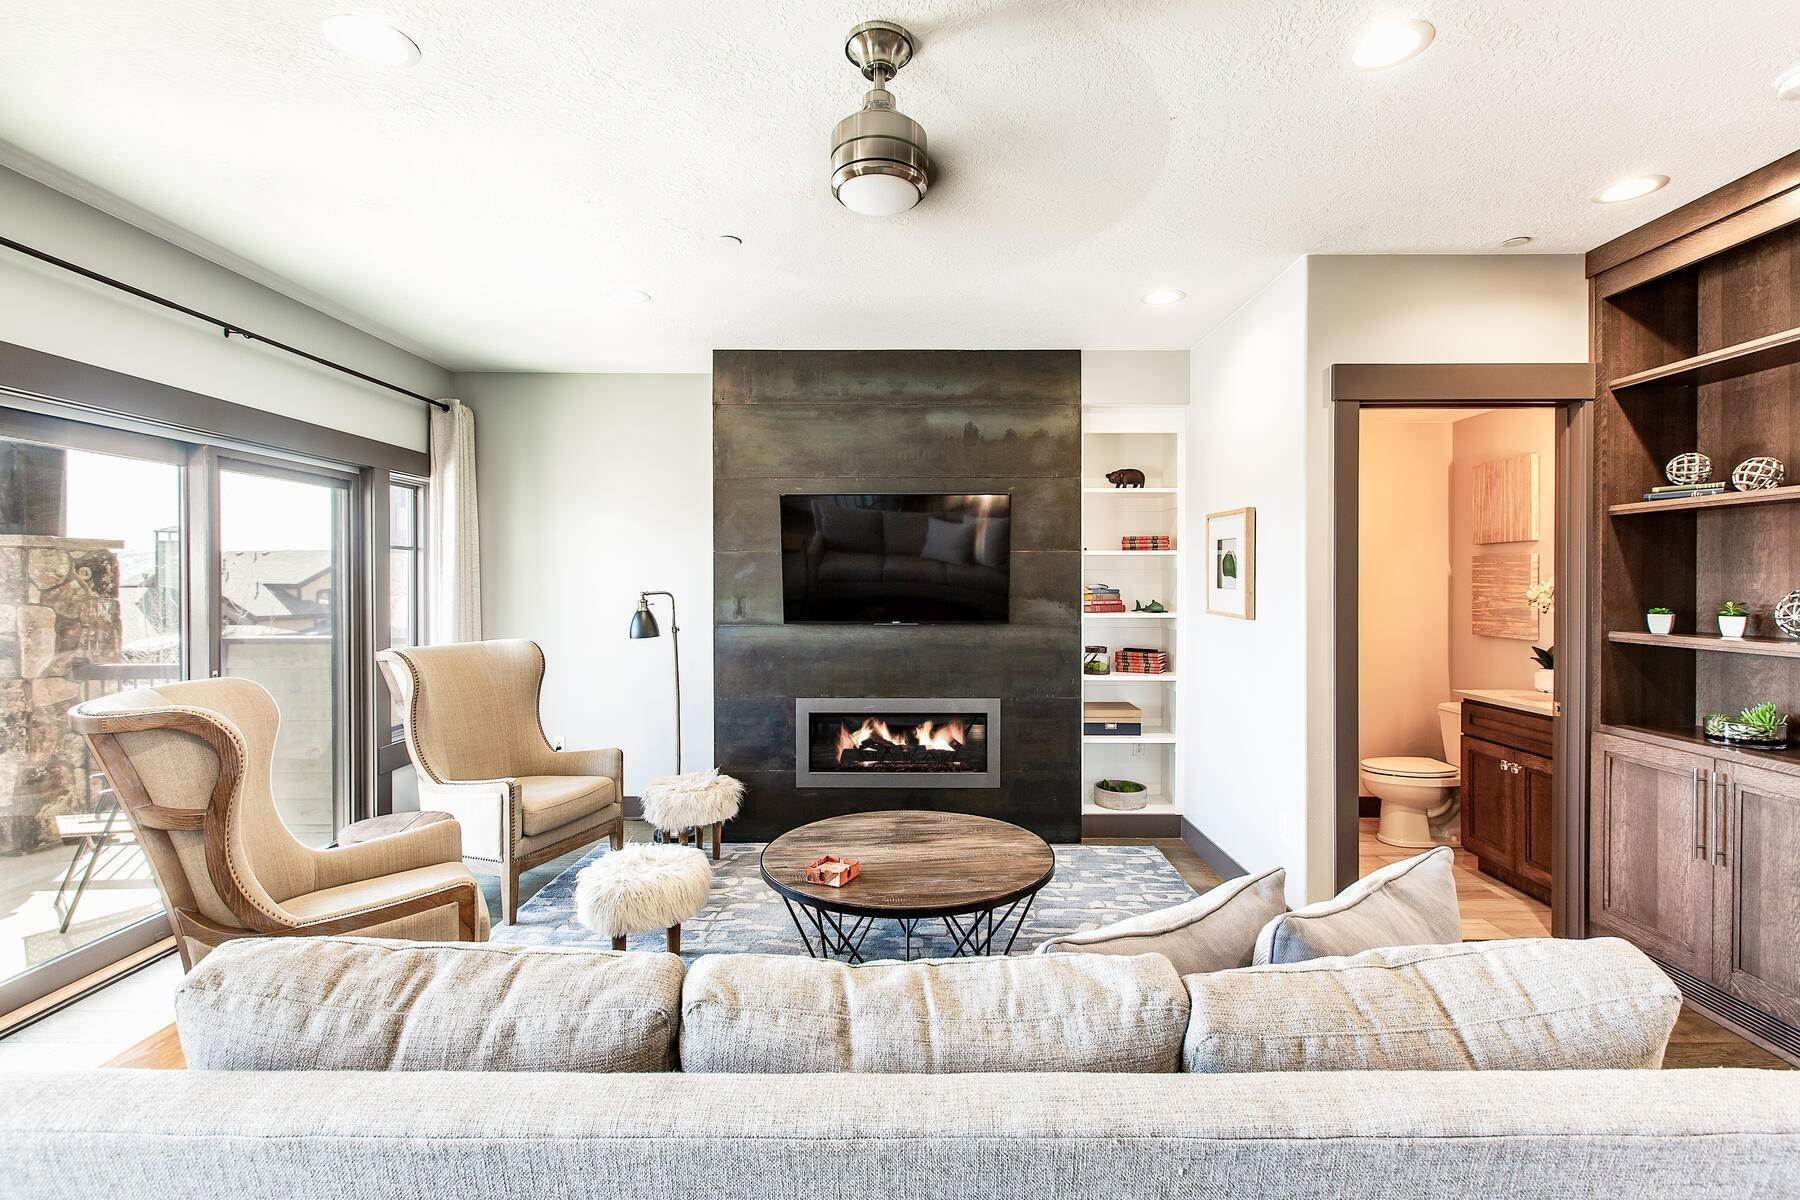 2. townhouses for Sale at Walk to Skiing from this Turn-Key Canyons Village Townhome 4221 Fairway Lane, D-4 Park City, Utah 84098 United States